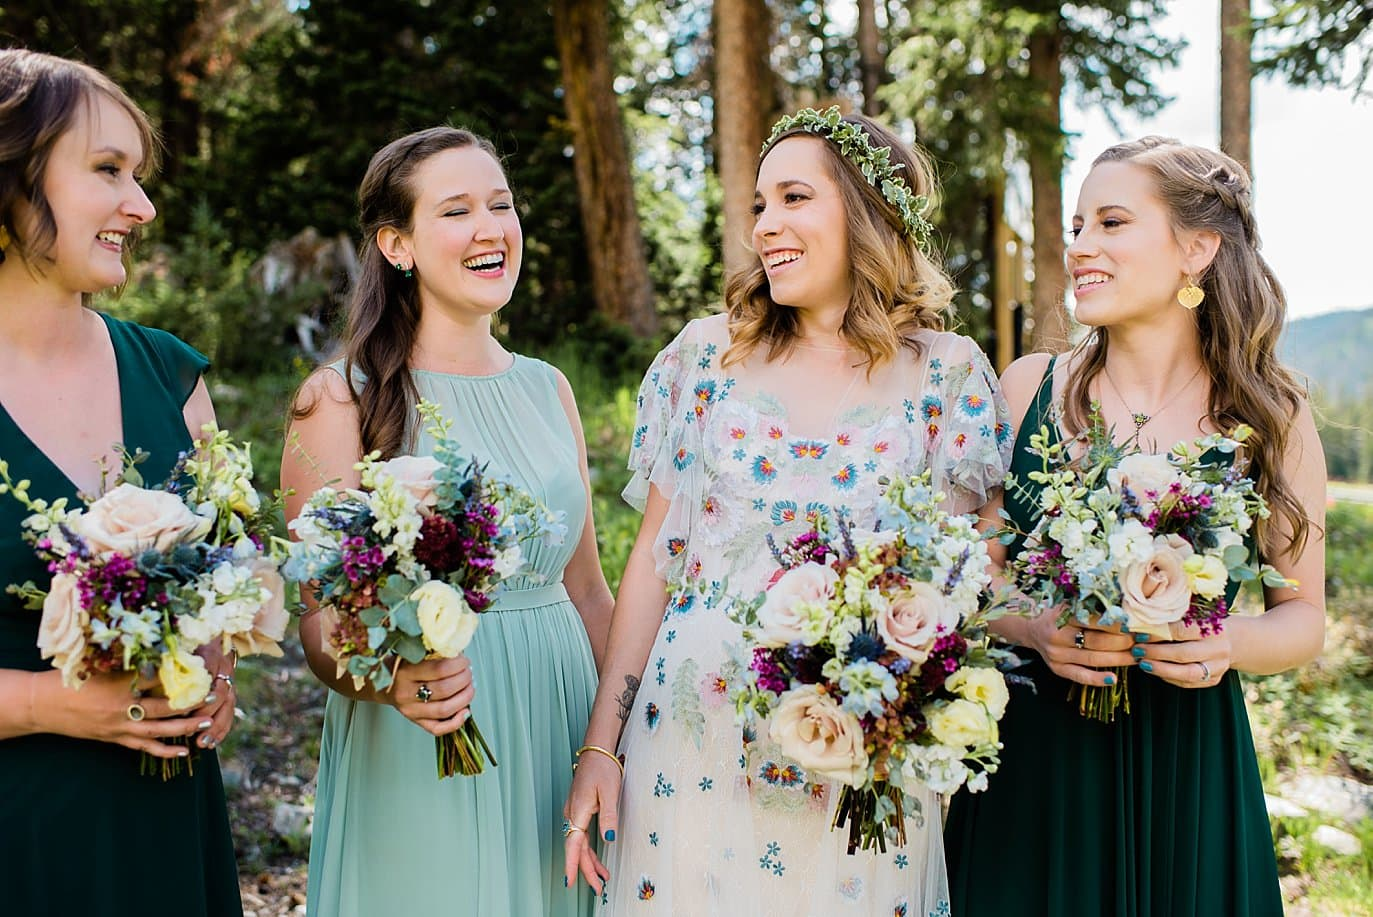 bride in unique boho floral dress and bridesmaids in green dresses at Arapahoe Basin wedding by Rocky Mountain Wedding photographer Jennie Crate photographer